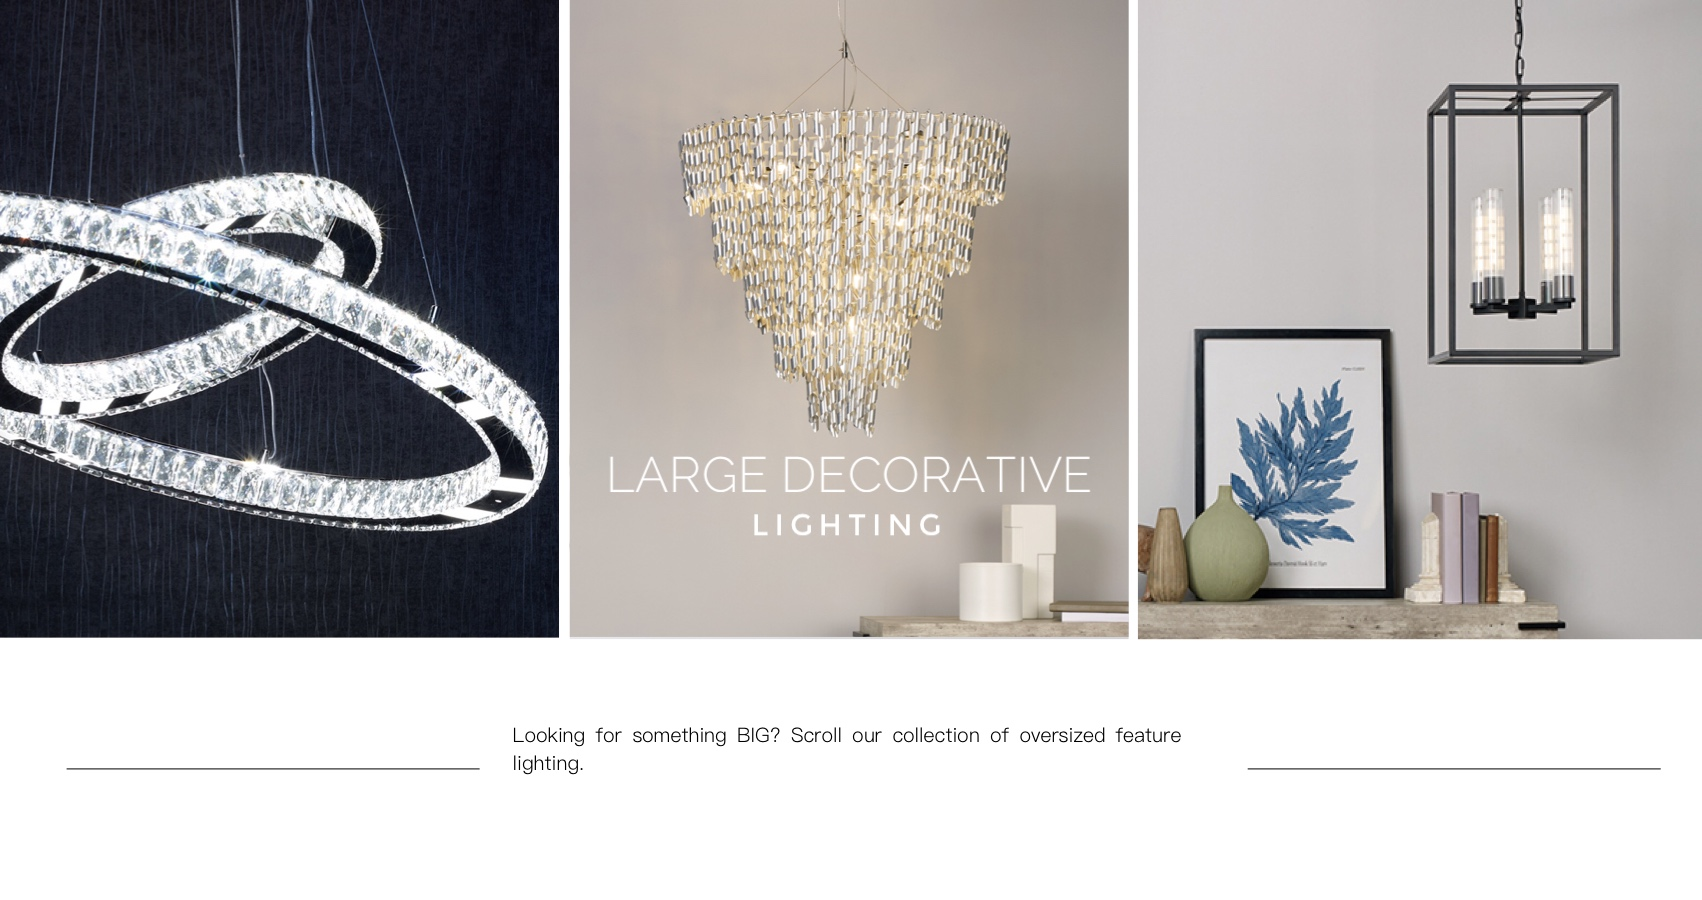 Large Decorative Lighting